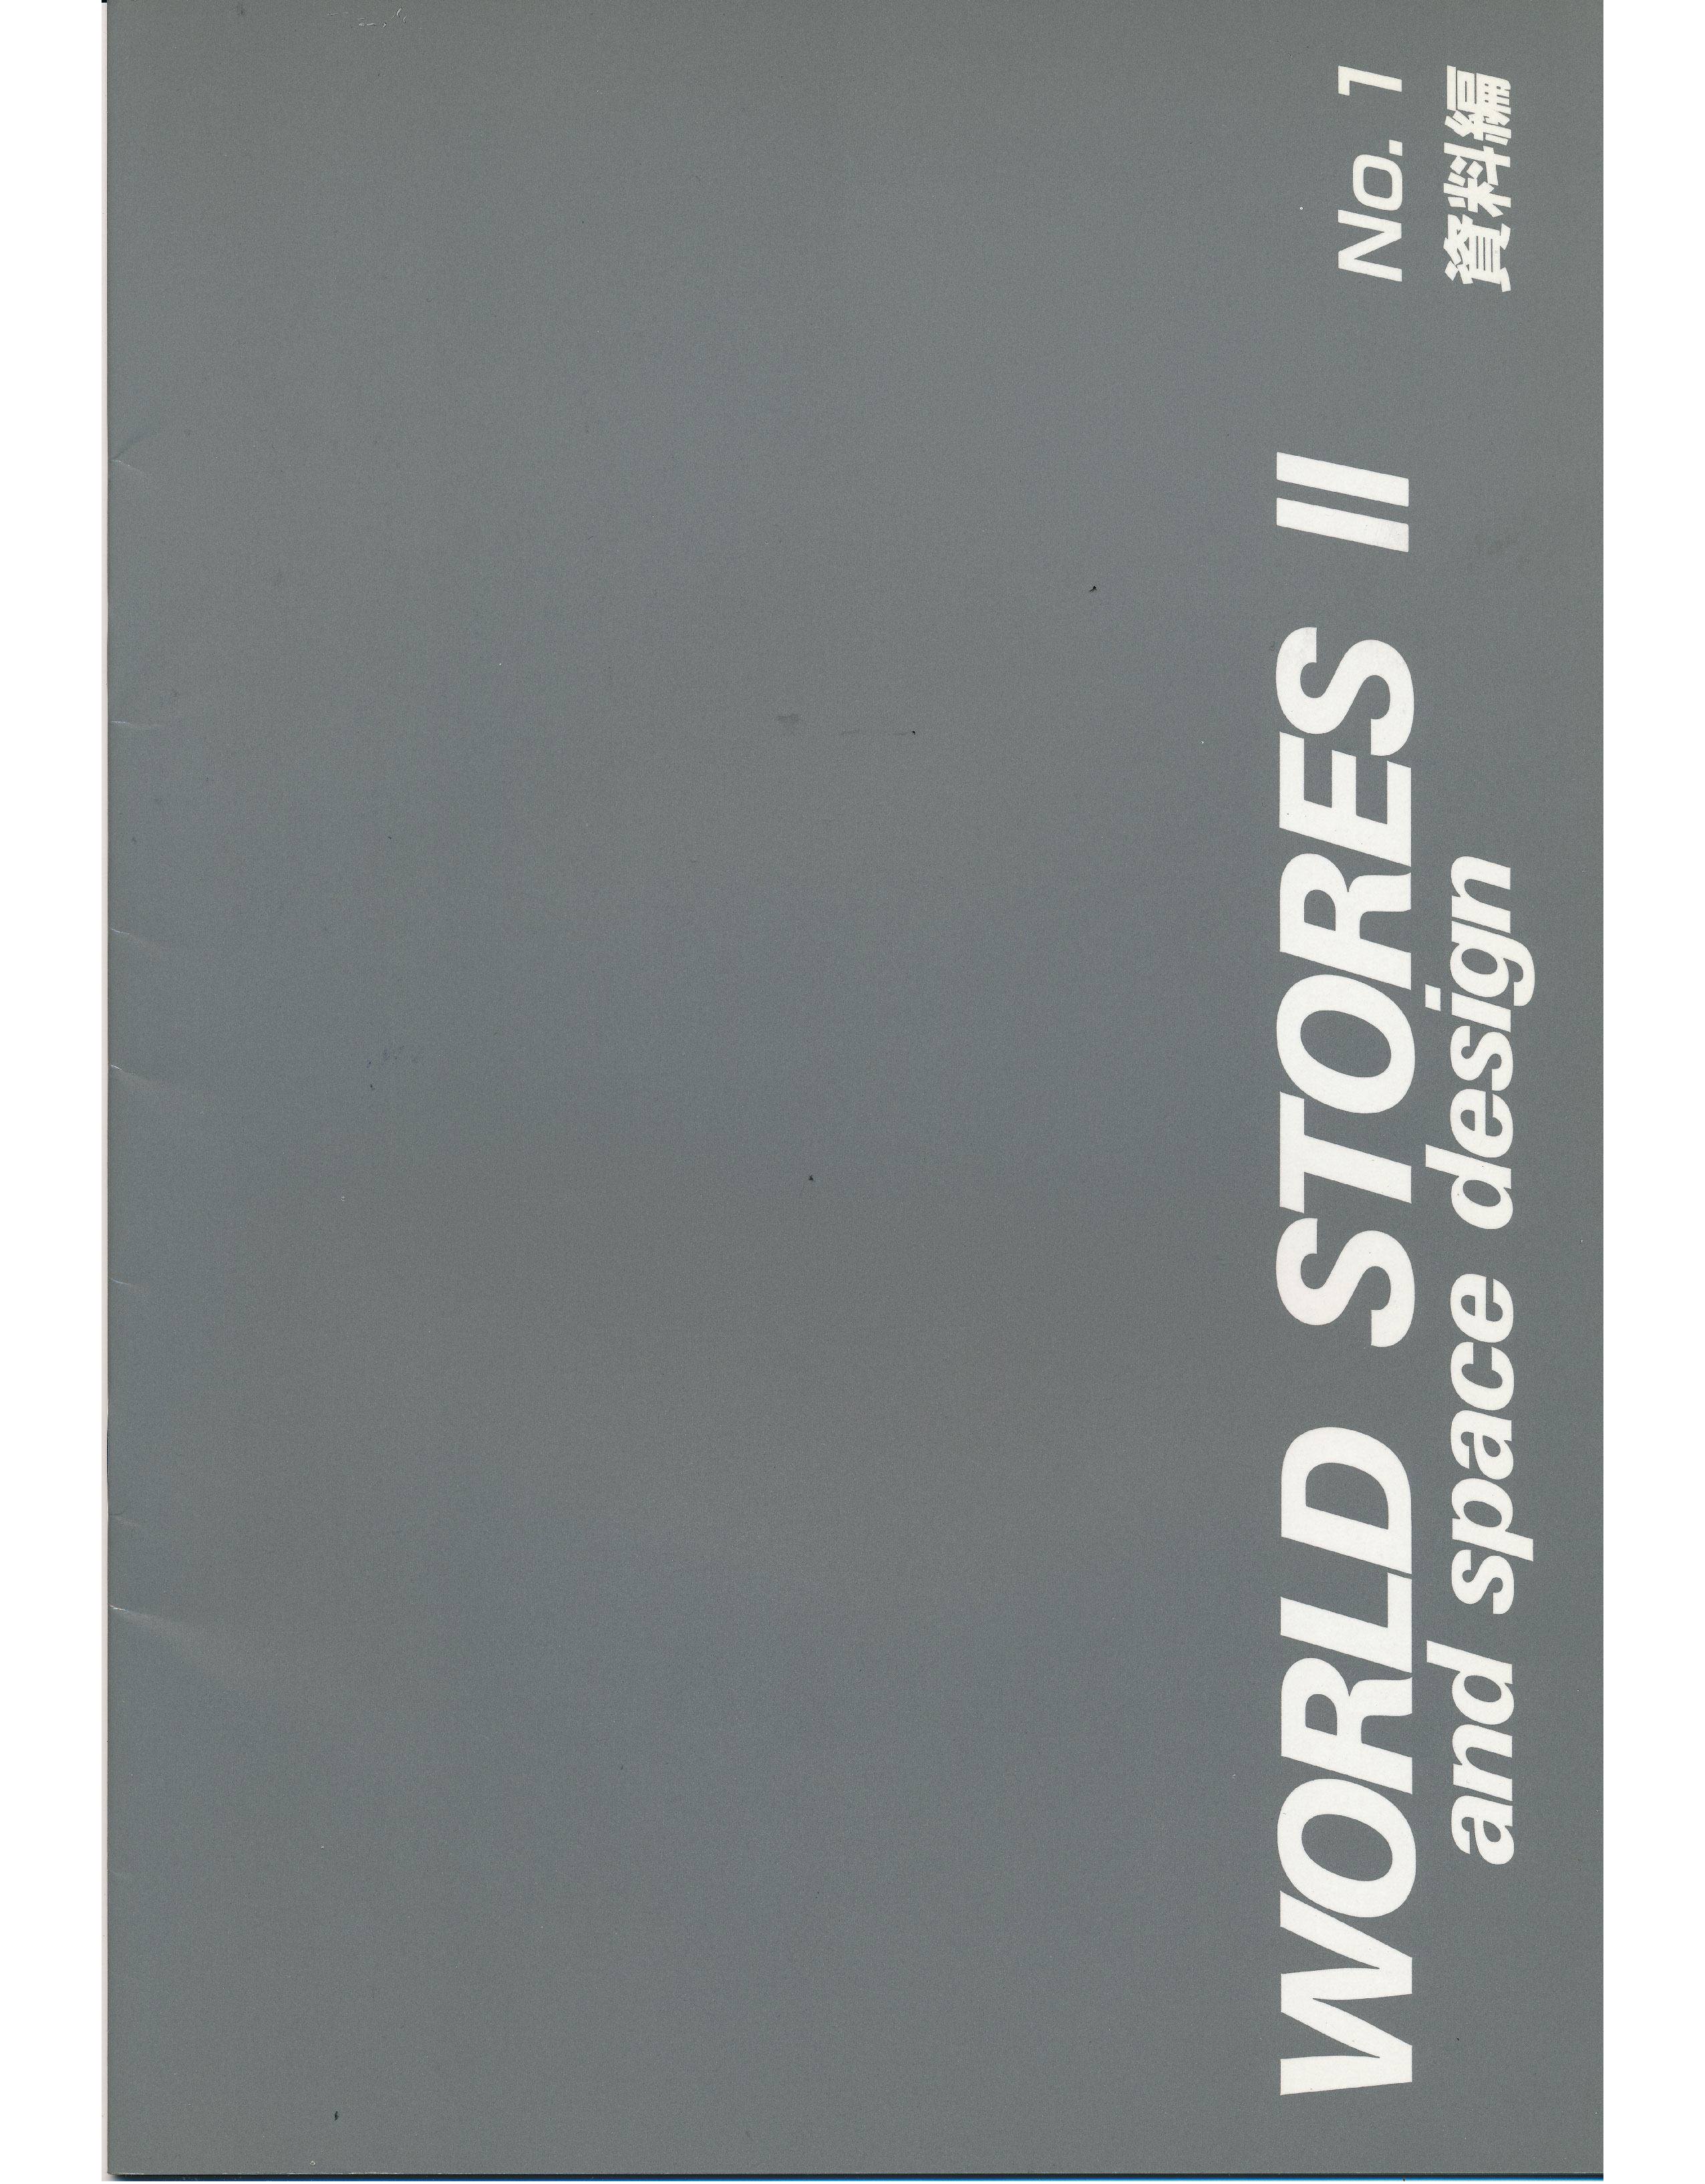 WORLD STORES II and space design